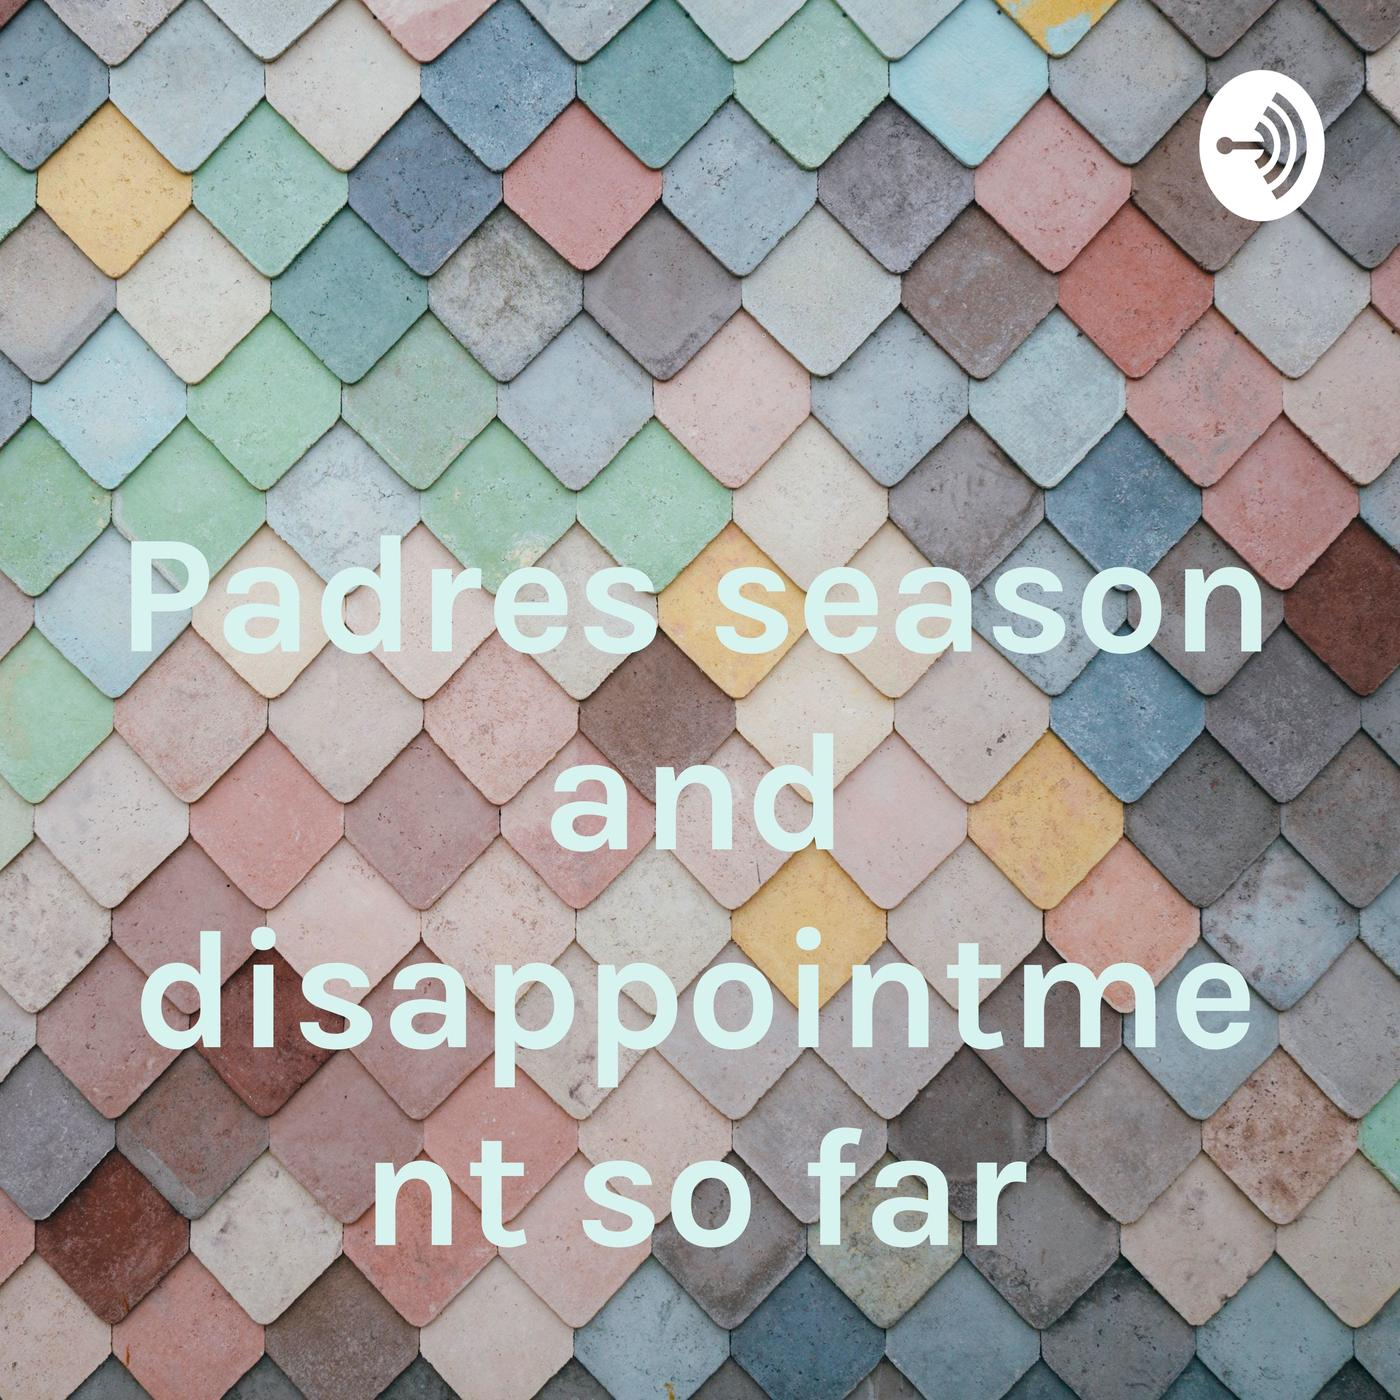 Padres season and disappointment so far (podcast) - Brandon